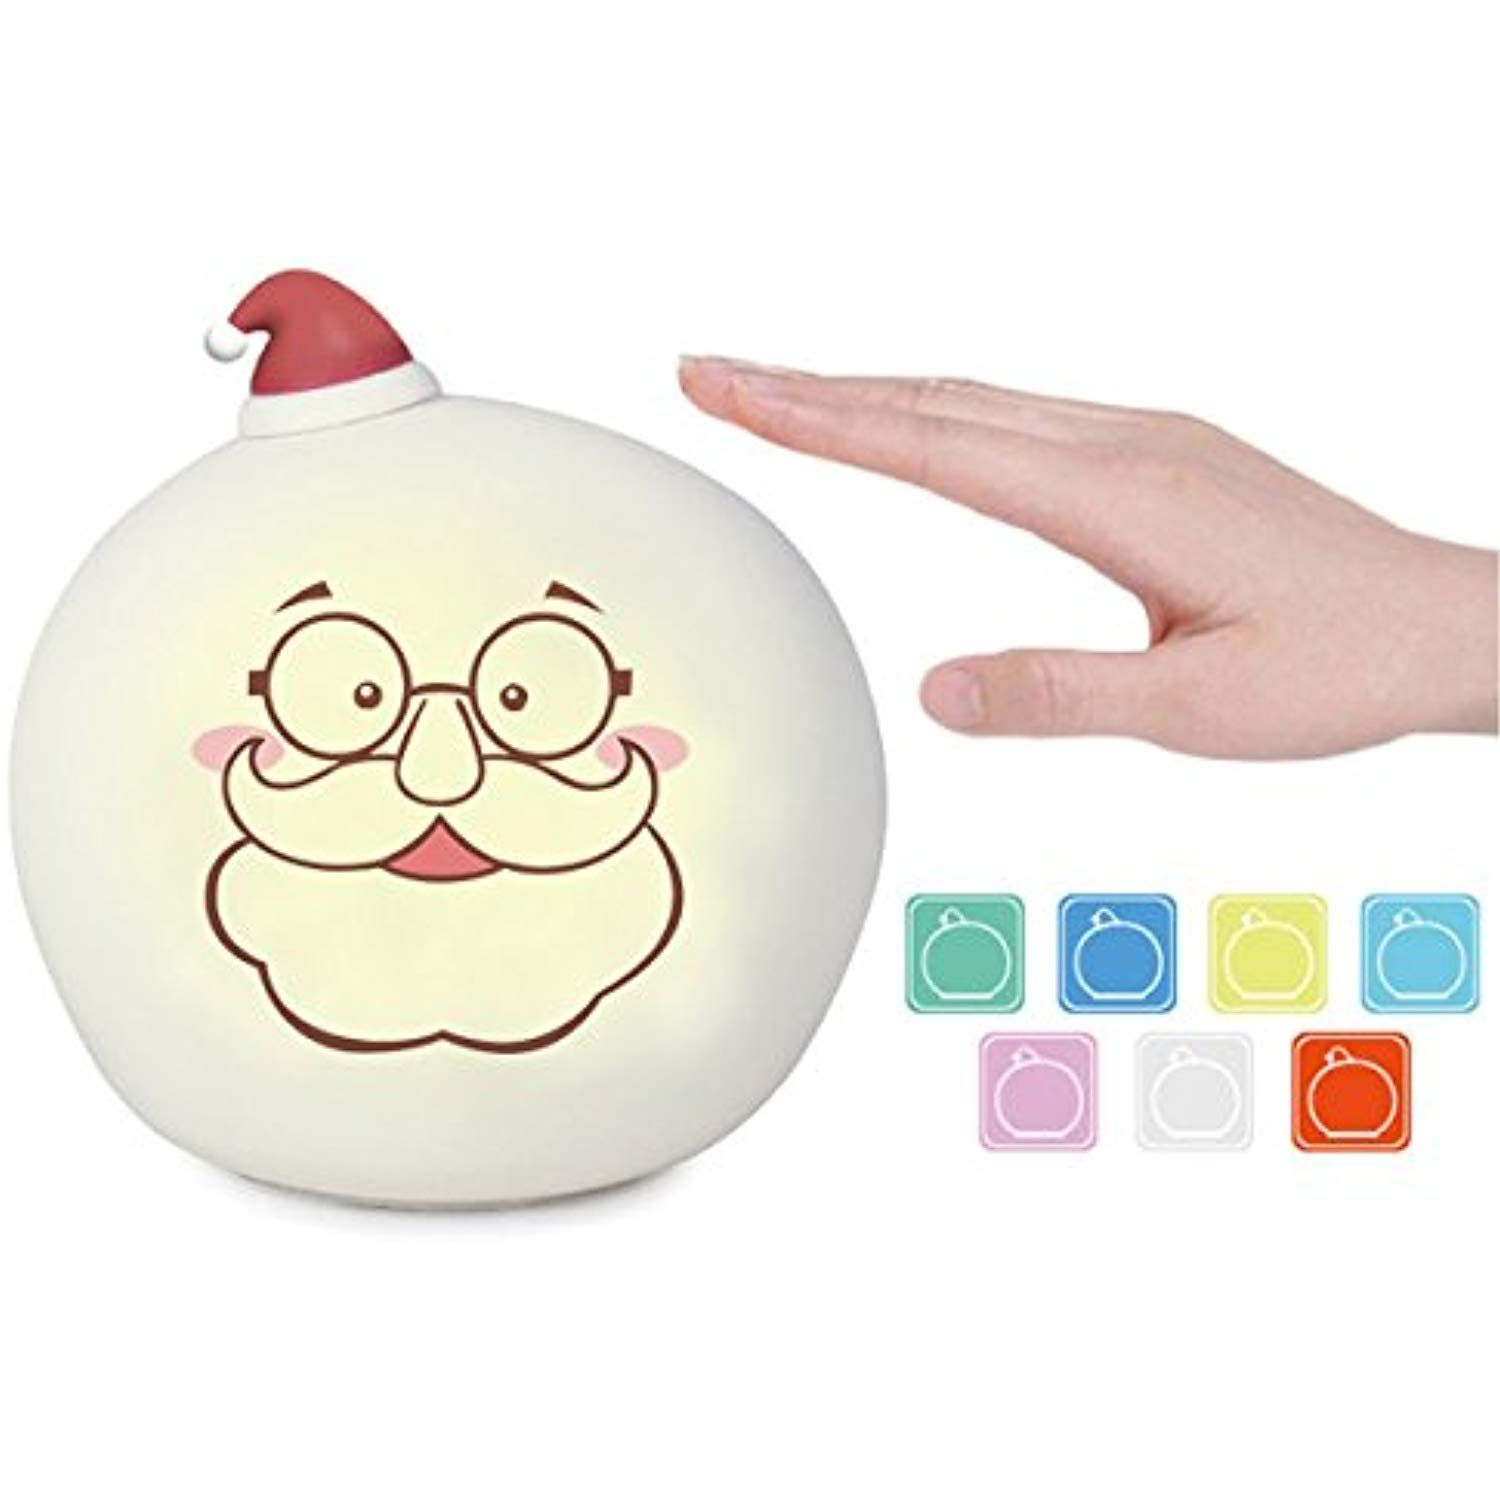 Christmas Led Night Lights For Kids Santa Claus Silicone Pat Light Rechargeable Senstive Control Dimmable 7 Color Brea Led Night Light Night Light Nursery Lamp